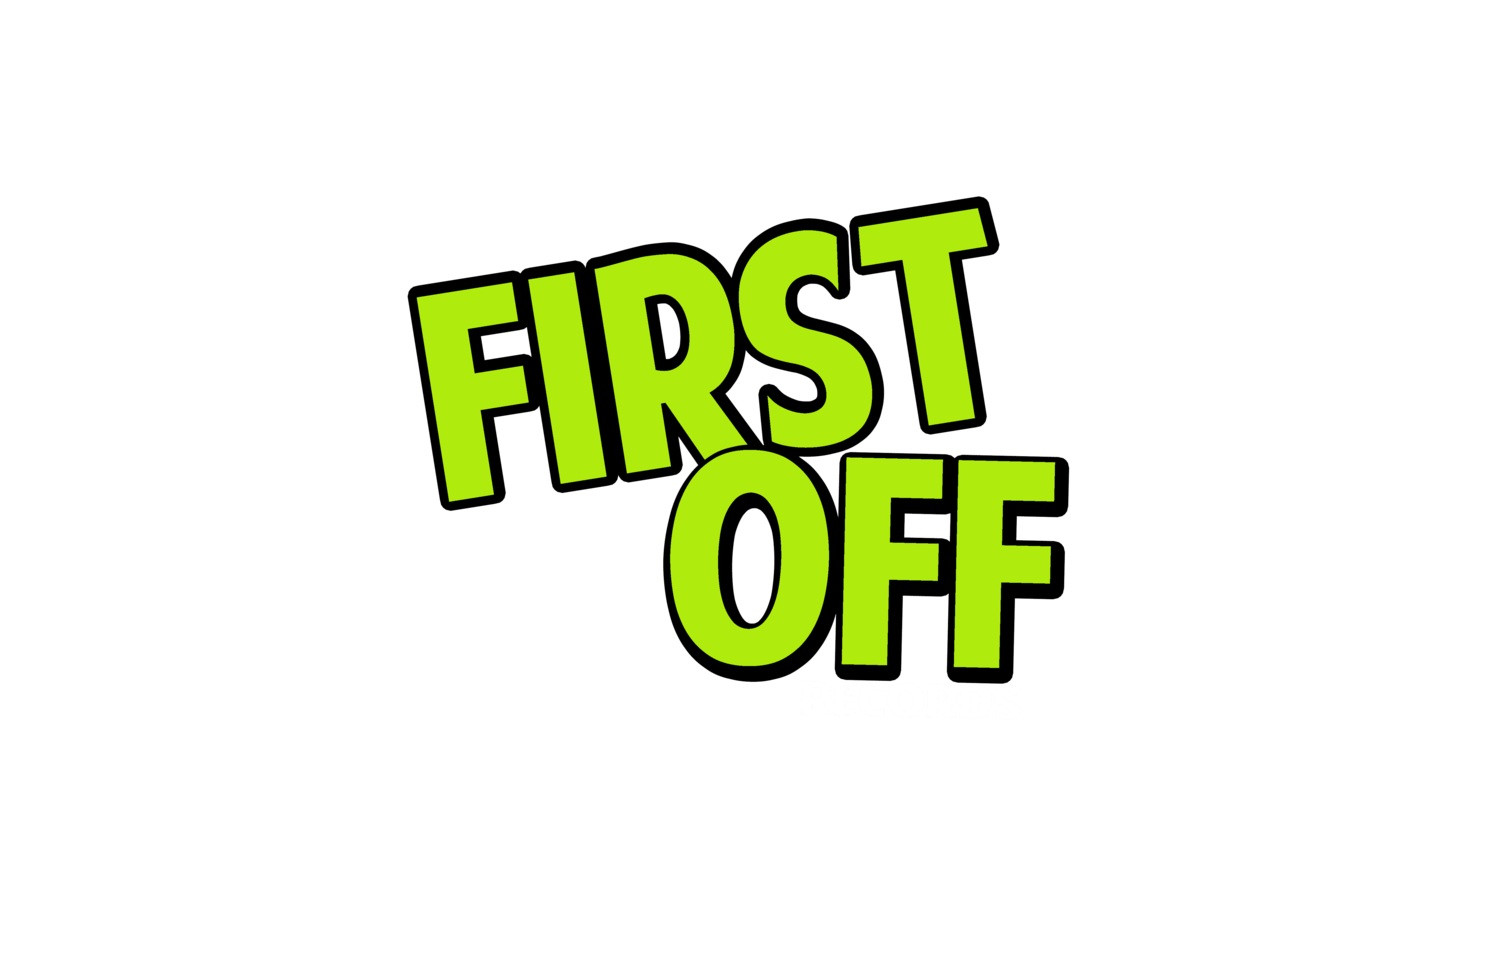 FirstOff Records